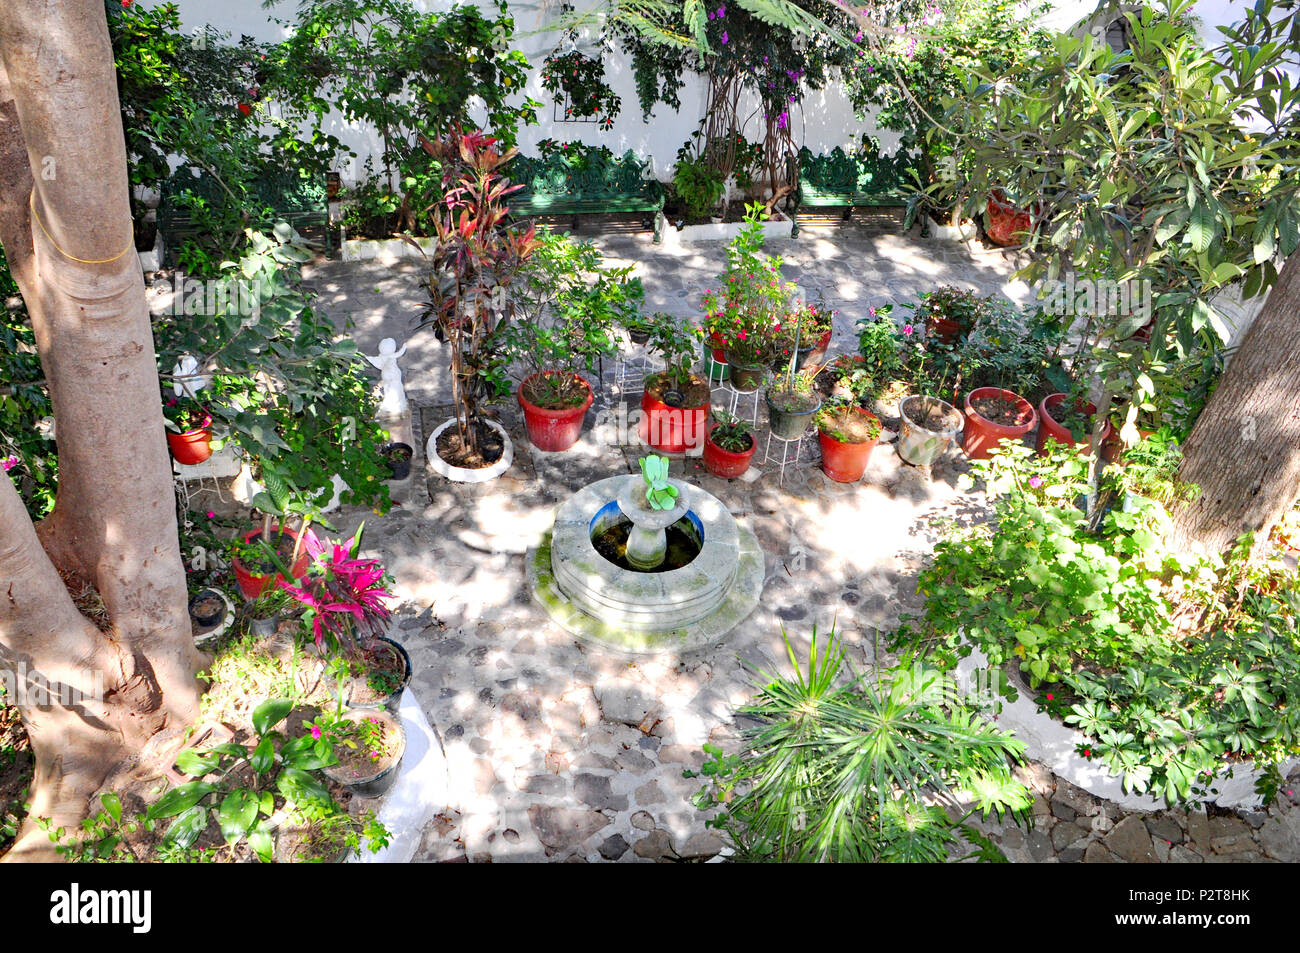 Mexican Patio Garden   Stock Image